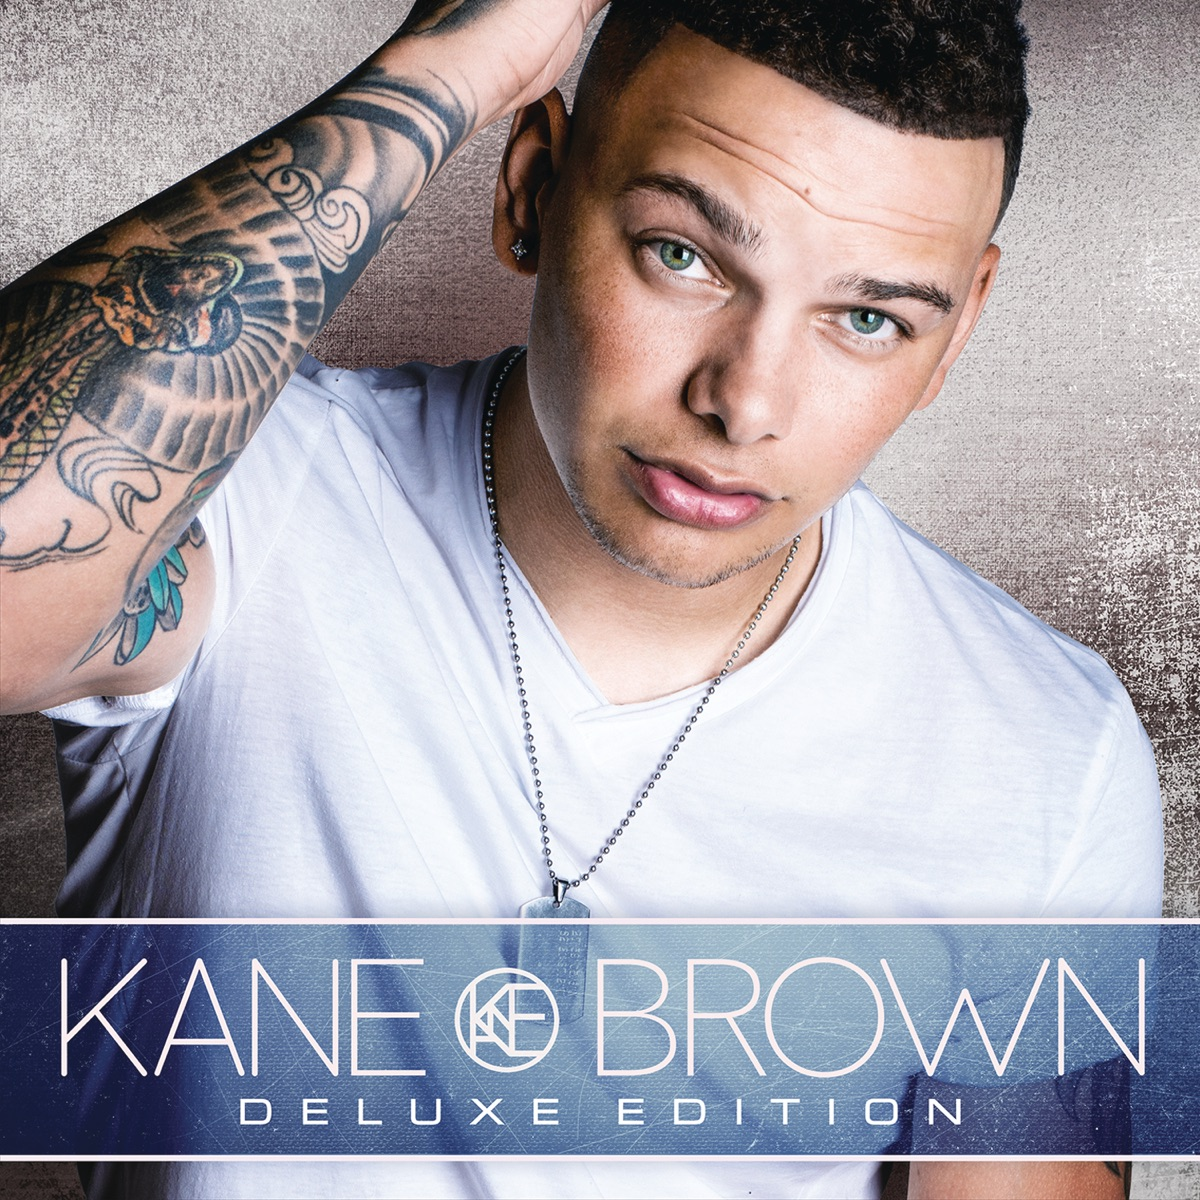 Kane Brown Deluxe Edition Kane Brown CD cover